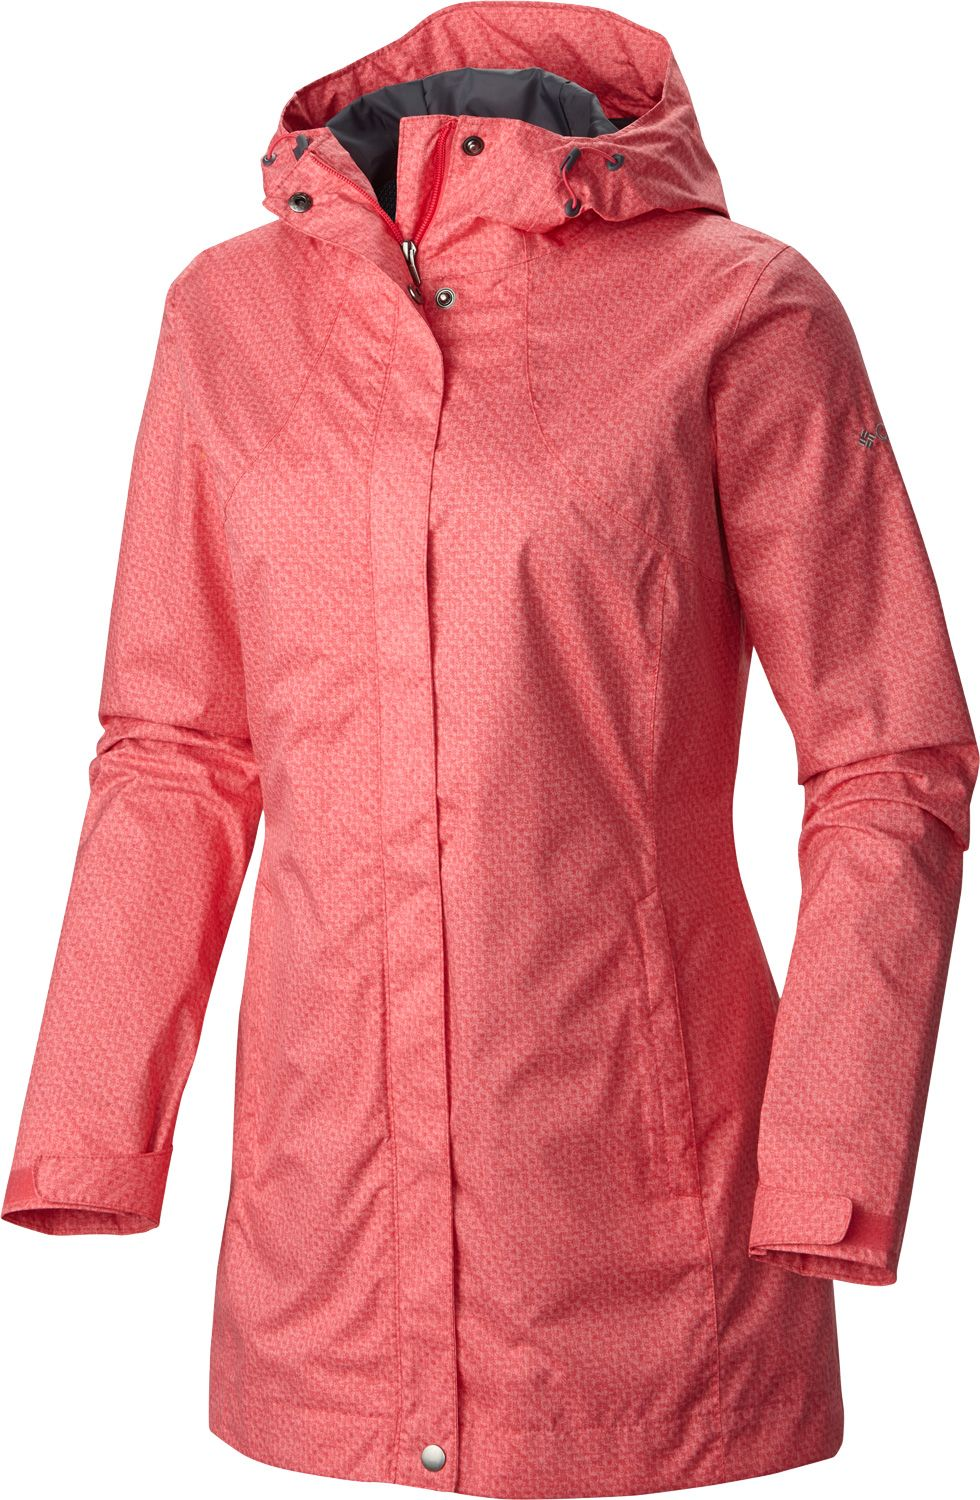 Columbia Women's Splash-A-Little Rain Jacket | DICK'S Sporting Goods